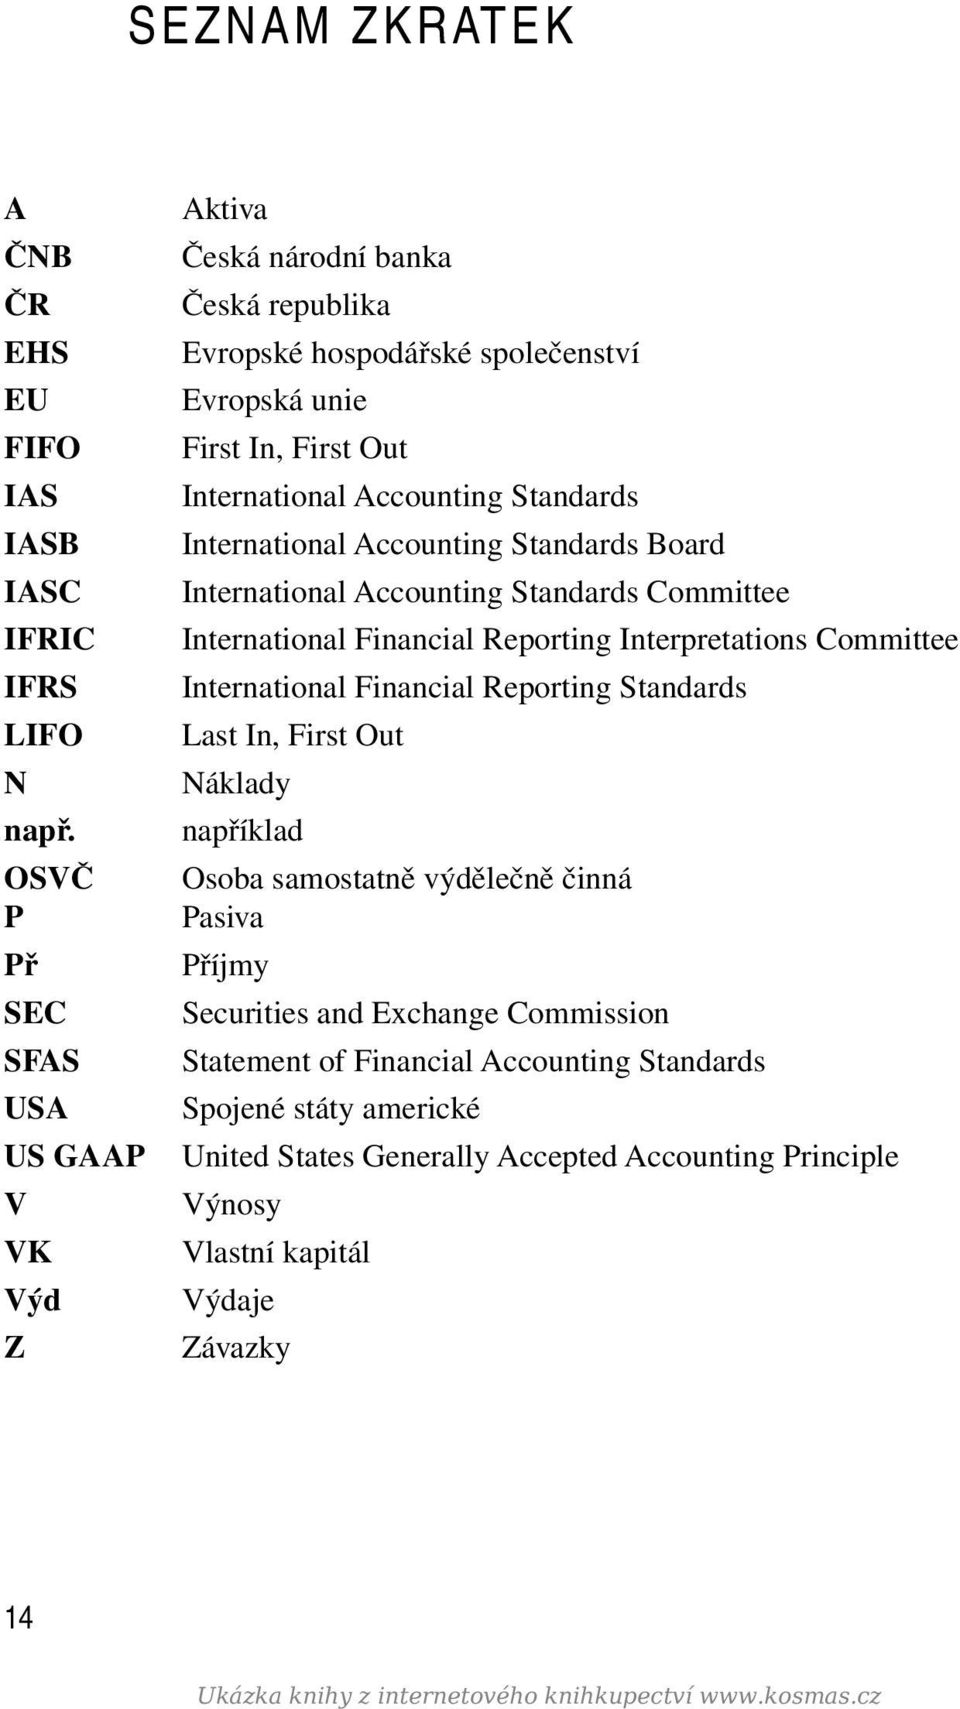 International Accounting Standards Board International Accounting Standards Committee International Financial Reporting Interpretations Committee International Financial Reporting Standards Last